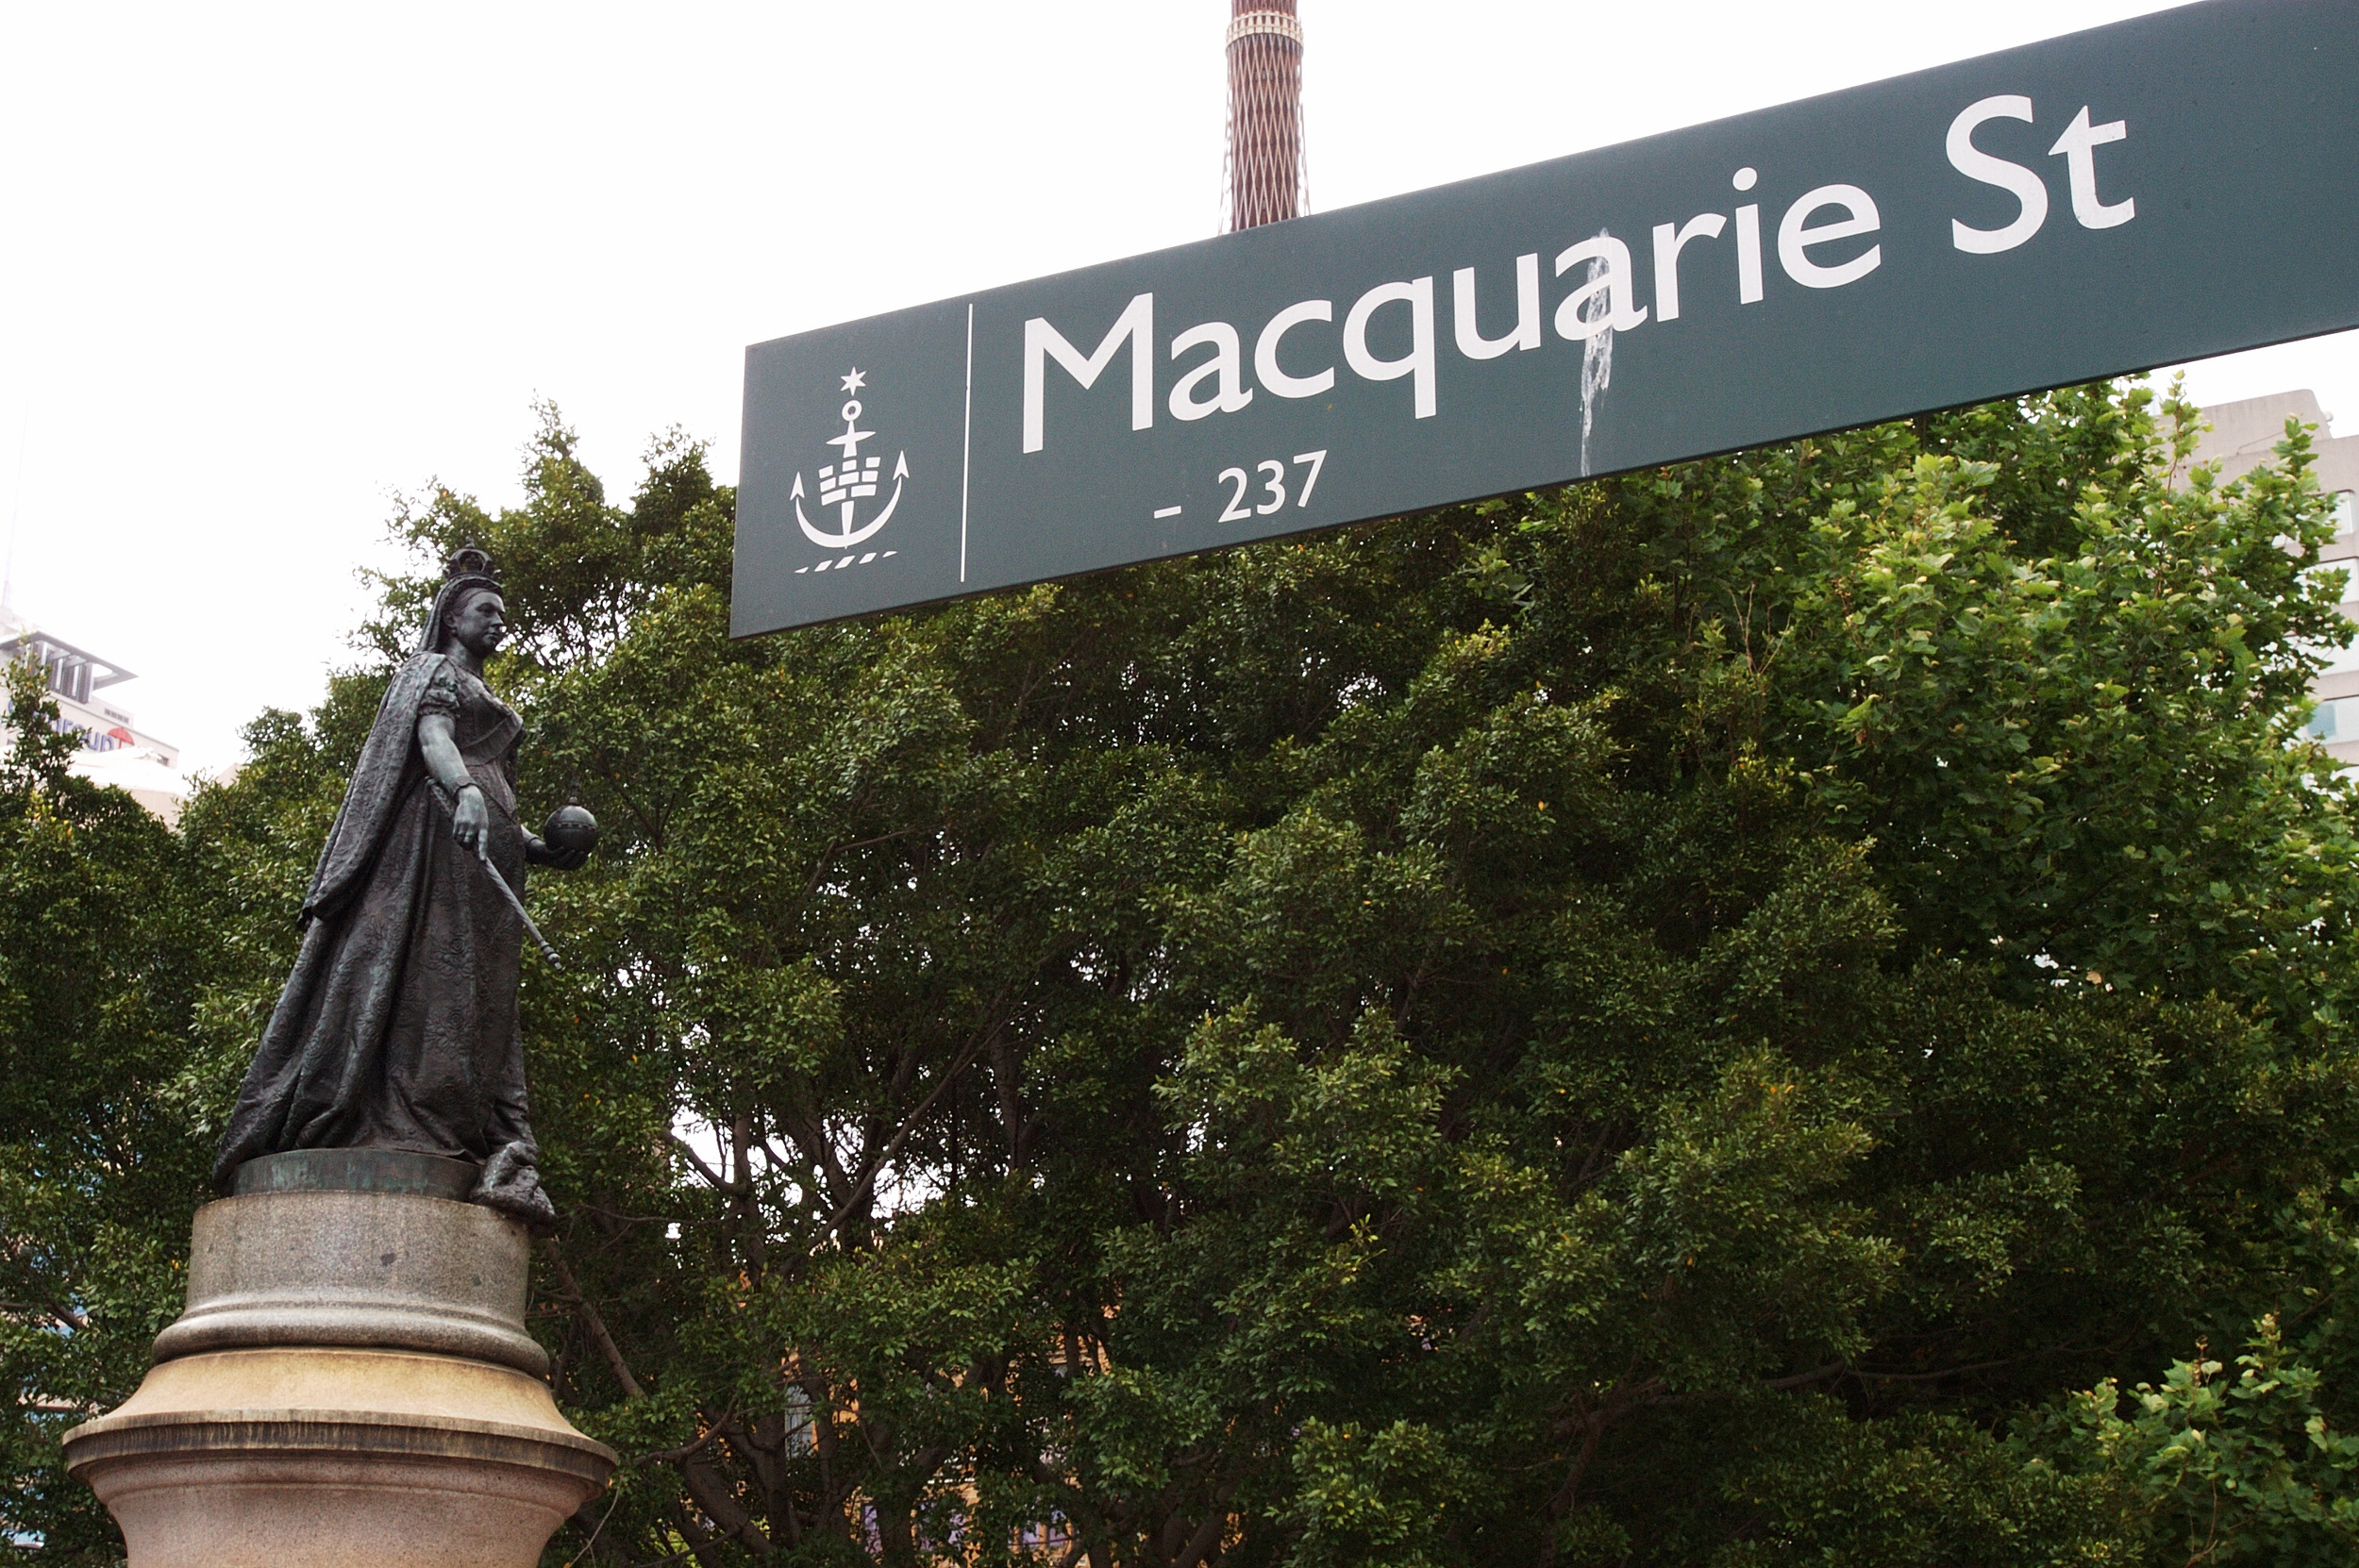 The Queen Victoria statue on Macquarie St